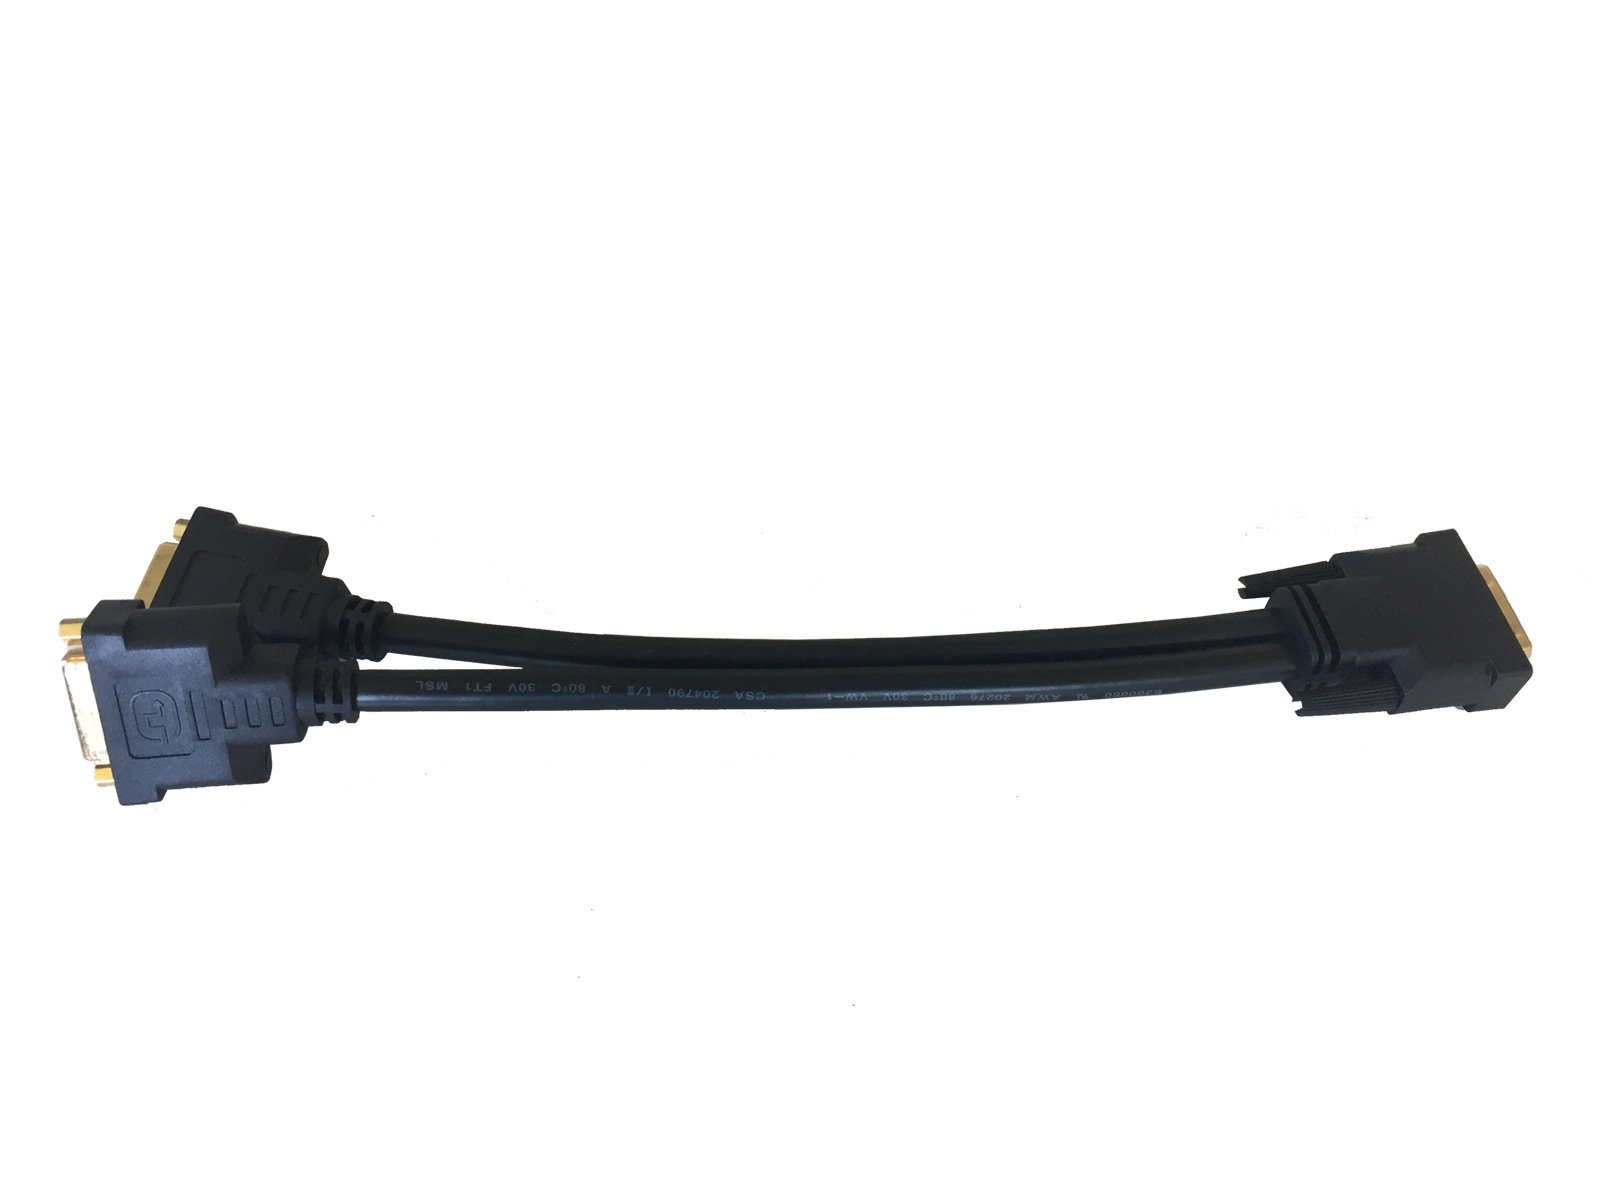 AYA 1Ft (1 Foot) DVI Digital Dual Link Male to 2 DVI-D Female Splitter Cable 28AWG by AYAGROUP